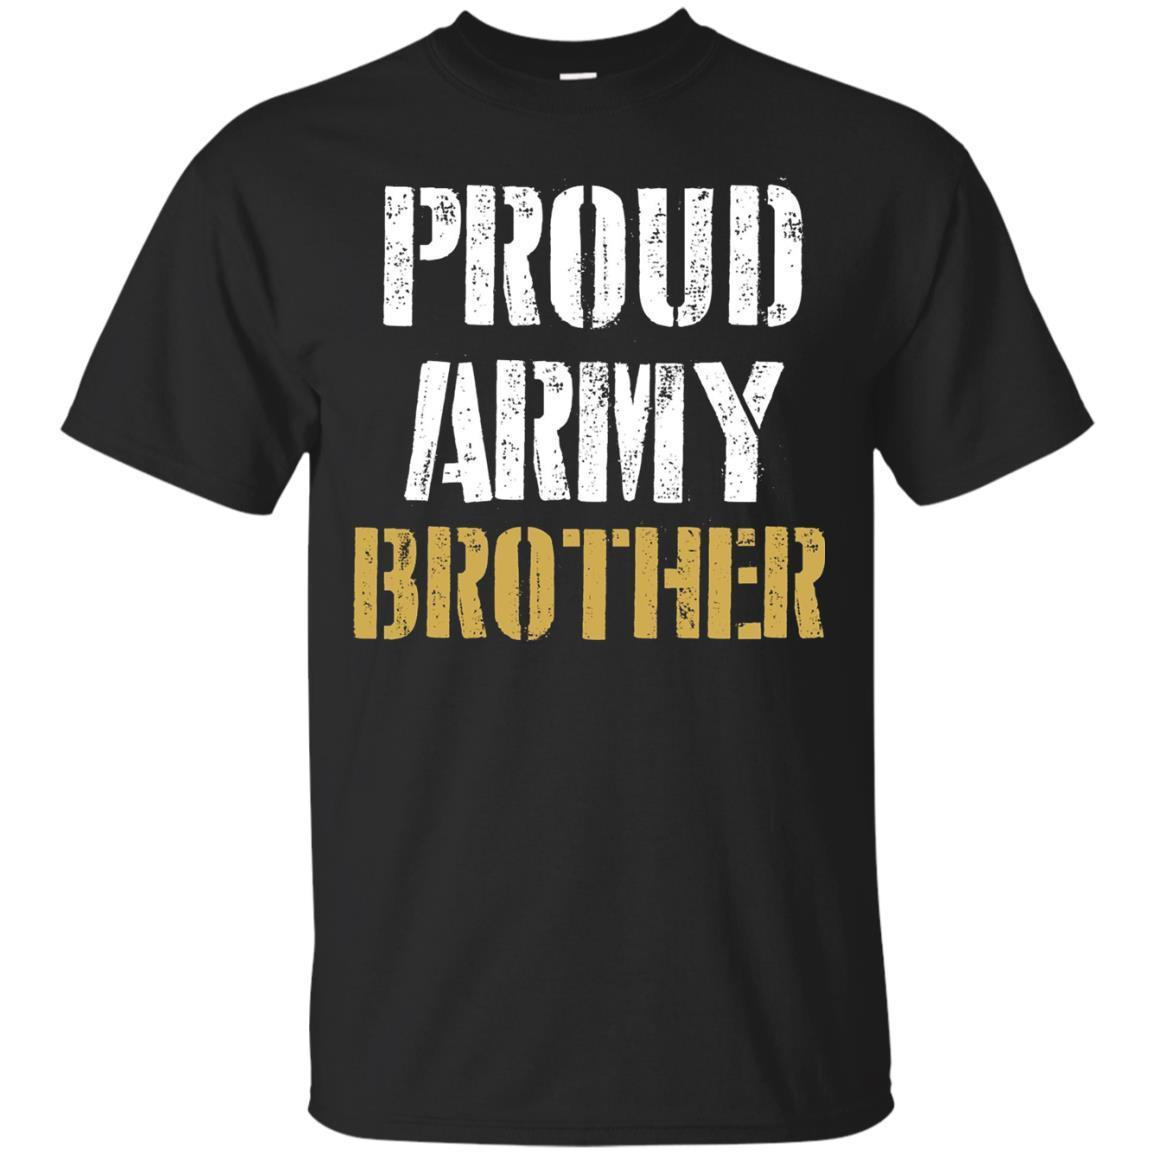 Proud Army Brother Shirt – Best Gift for Army Brother Shirt